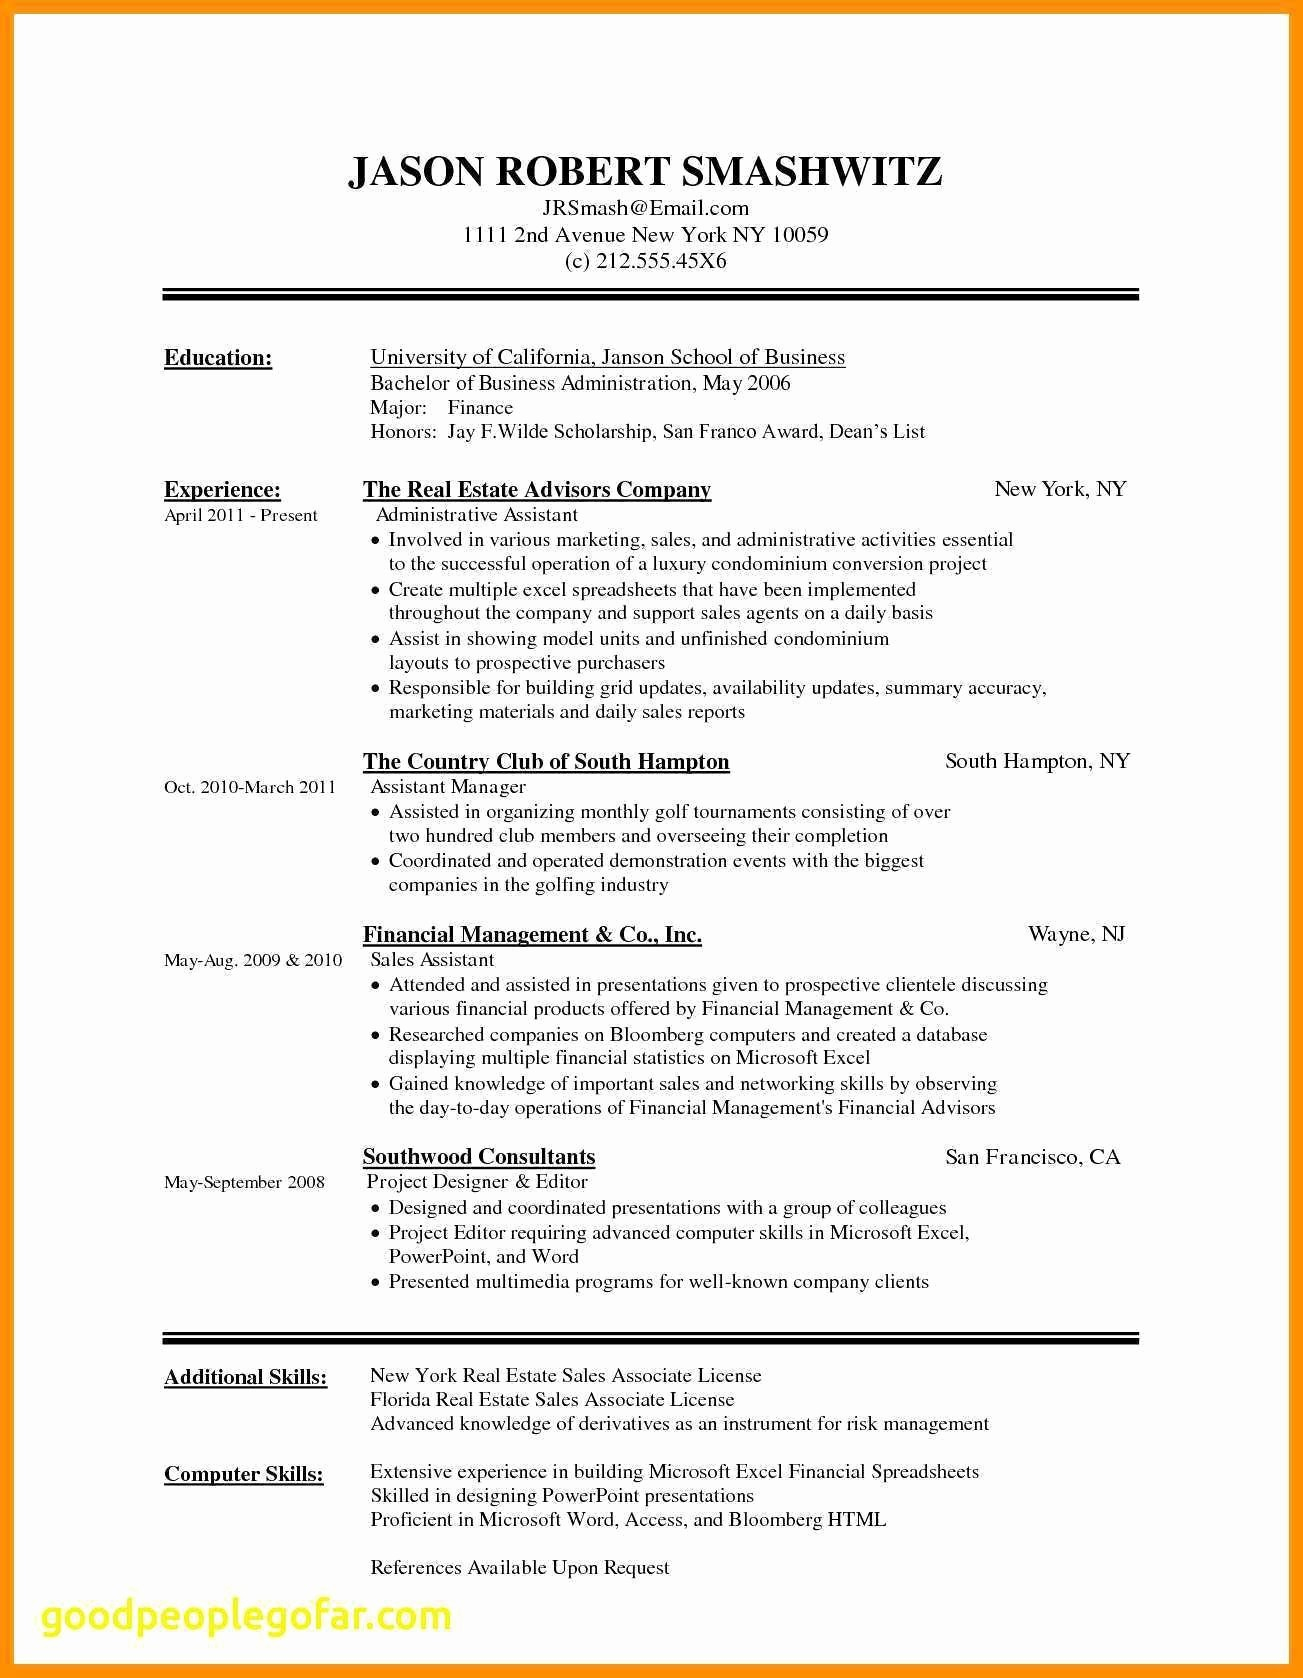 Free Resume Templates - 16 Fresh Free Resume Templates Microsoft